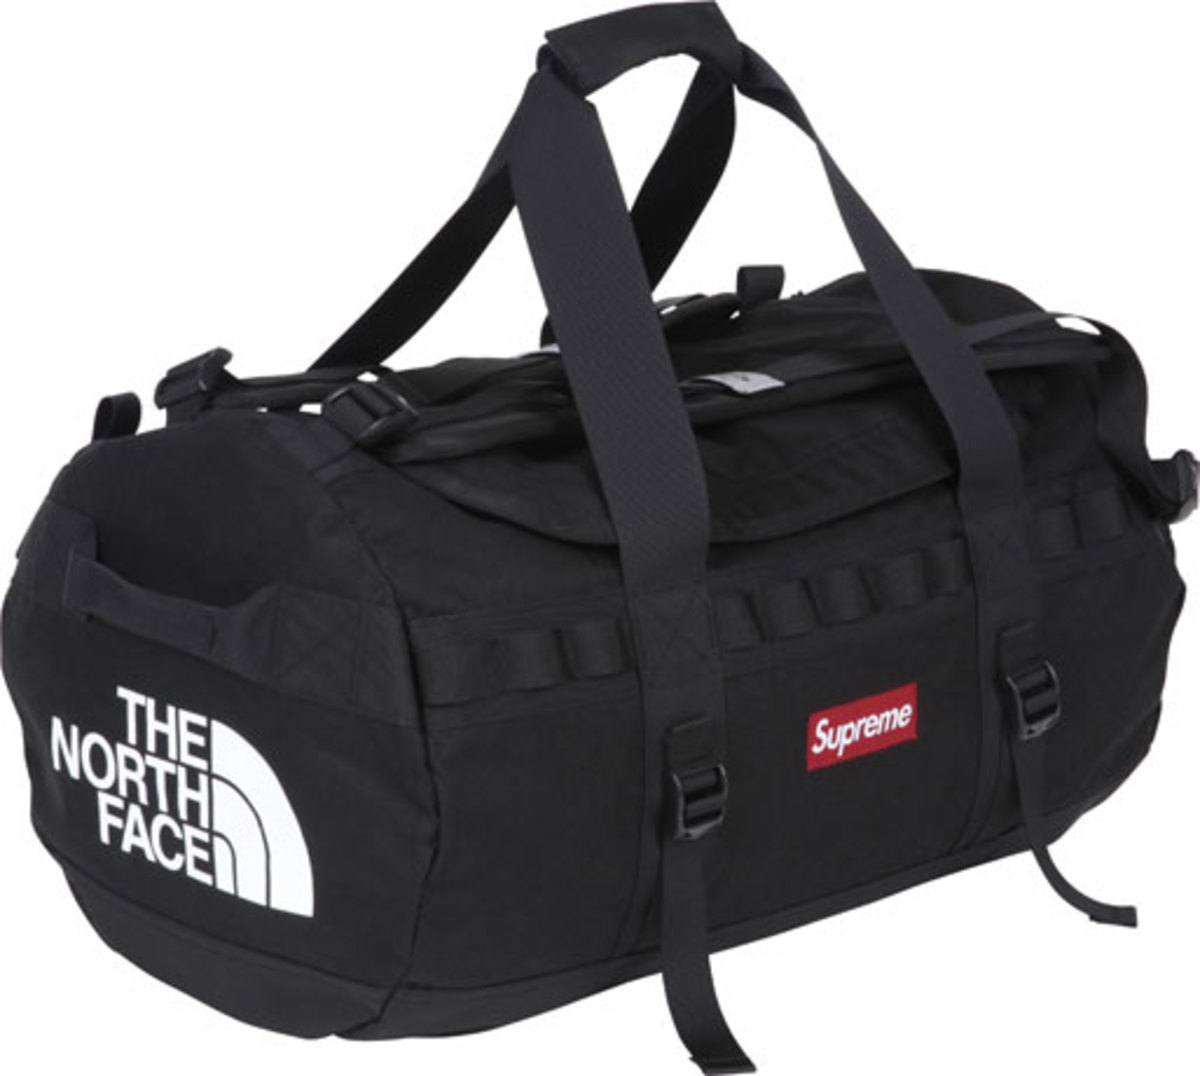 7dc2acf9b7 Supreme x The North Face - Fall Winter 2010 Collection - Freshness Mag